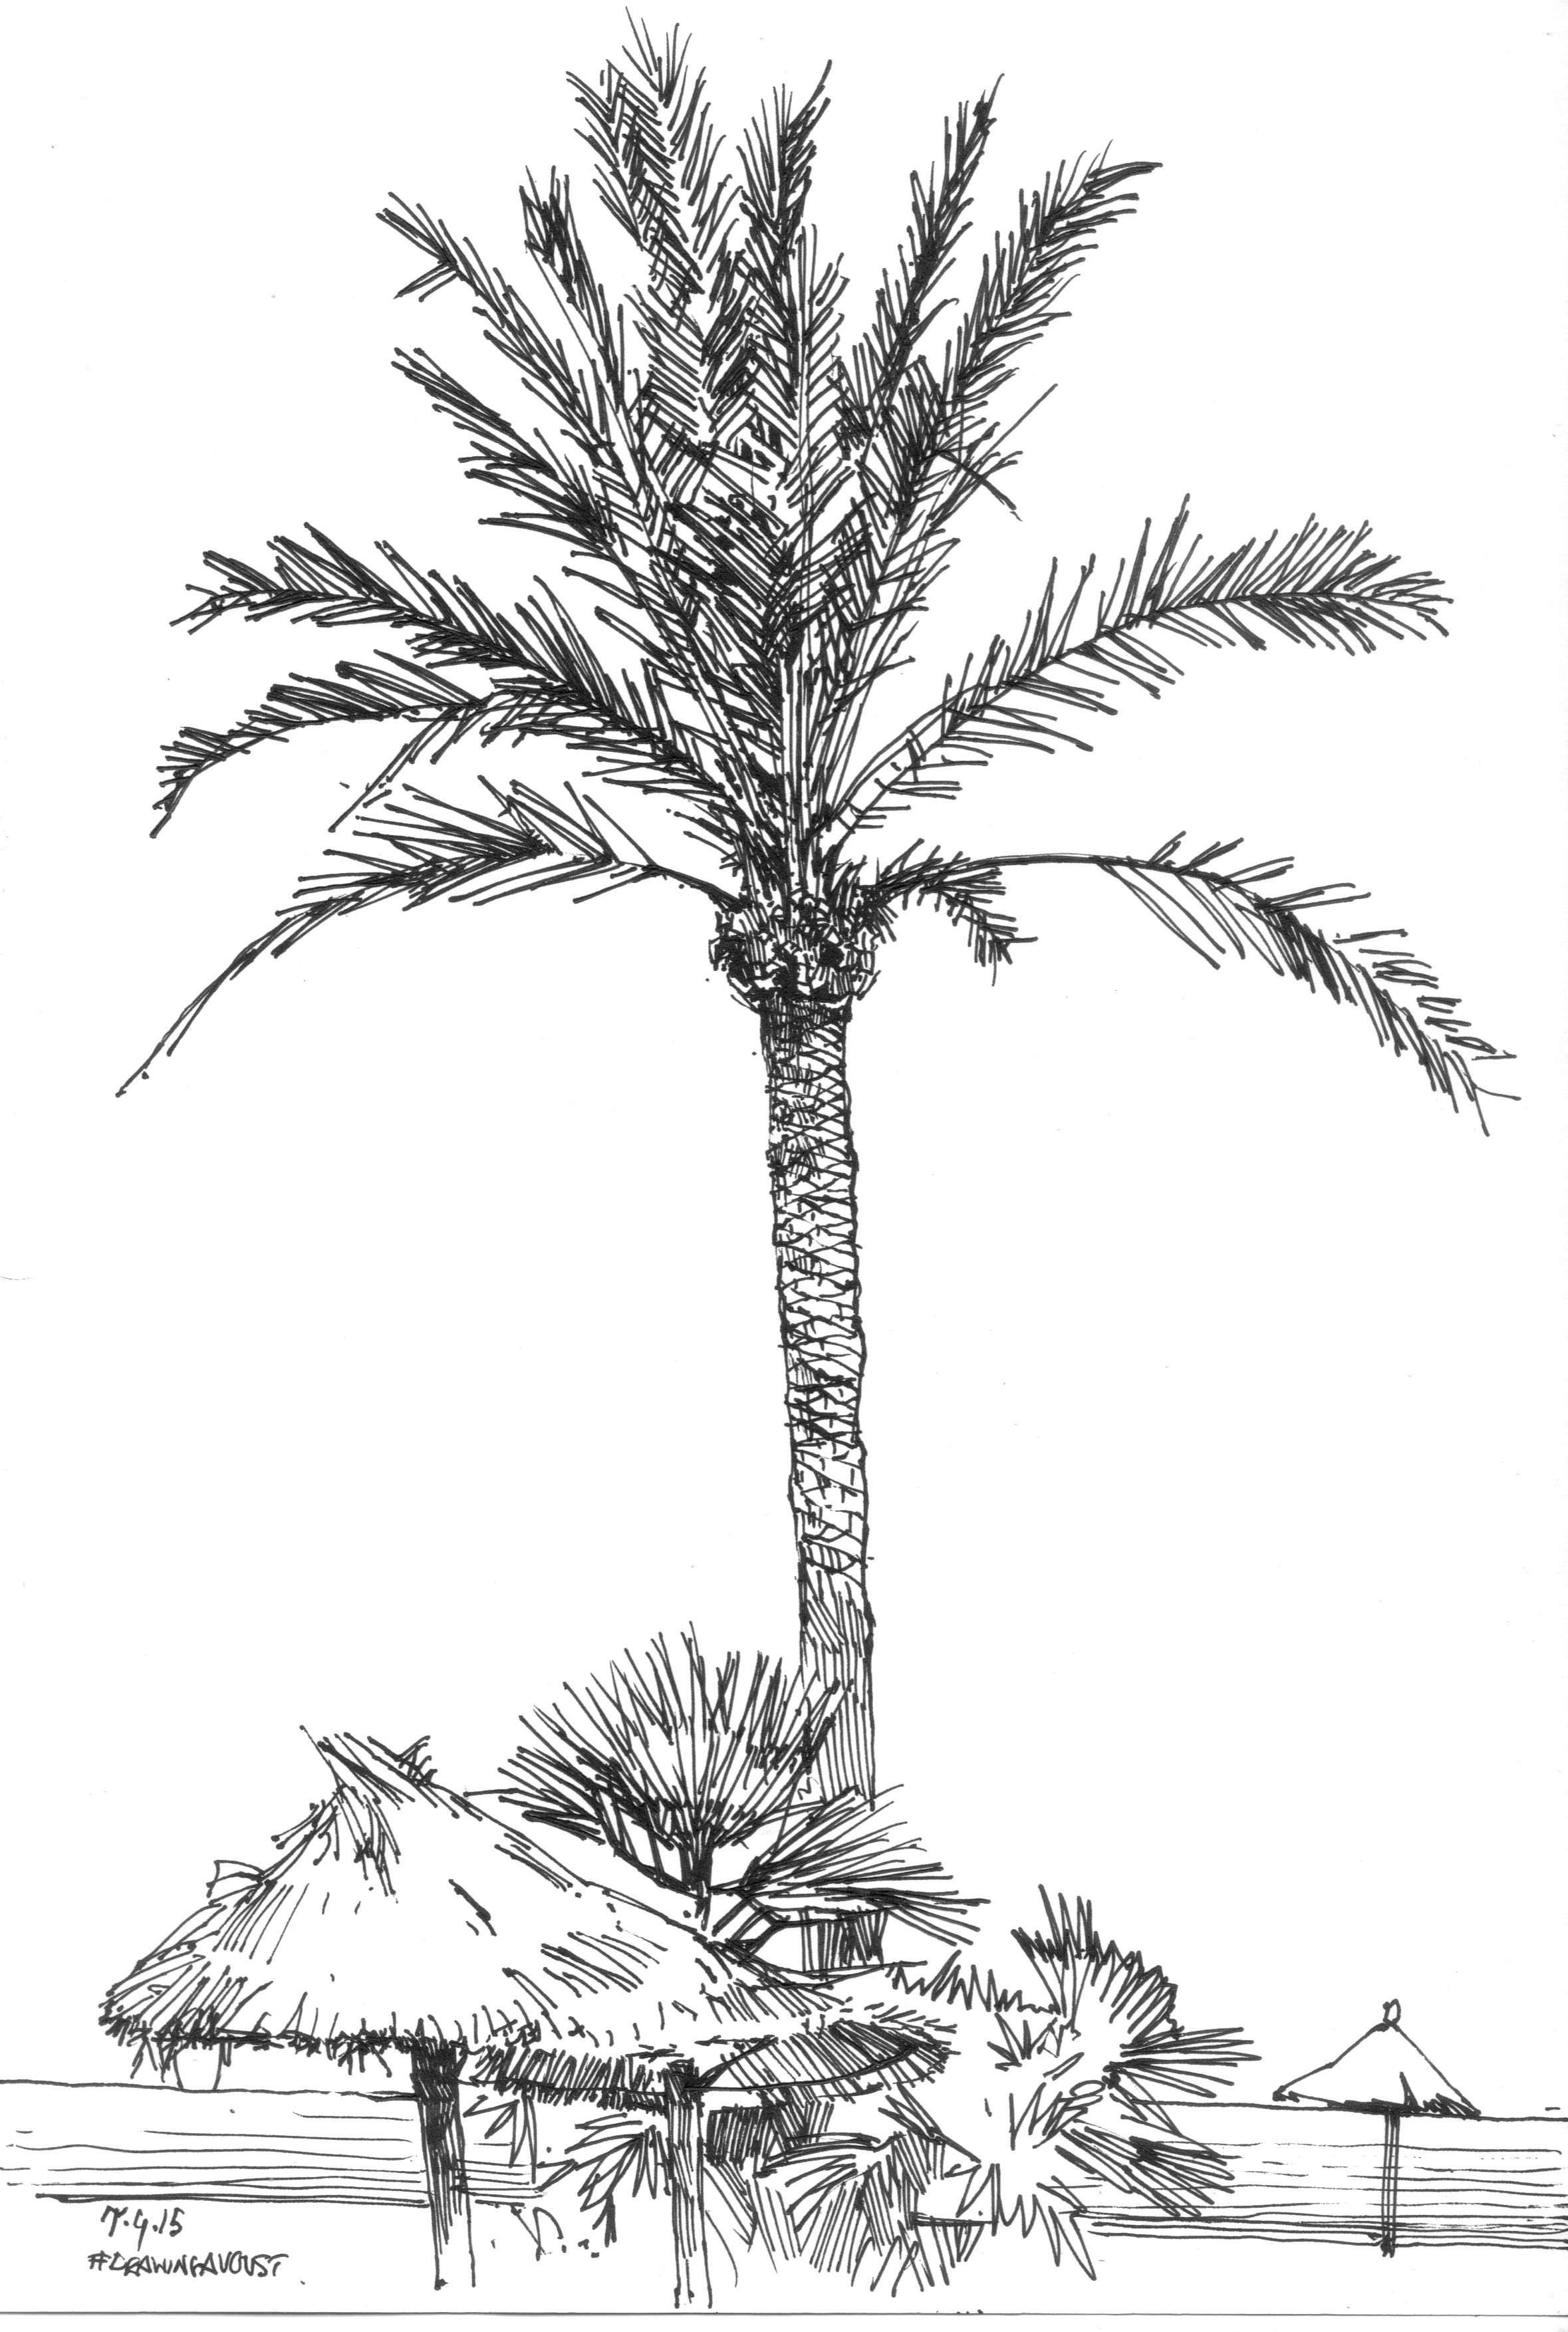 Palm Tree Drawing - Samantha Bell